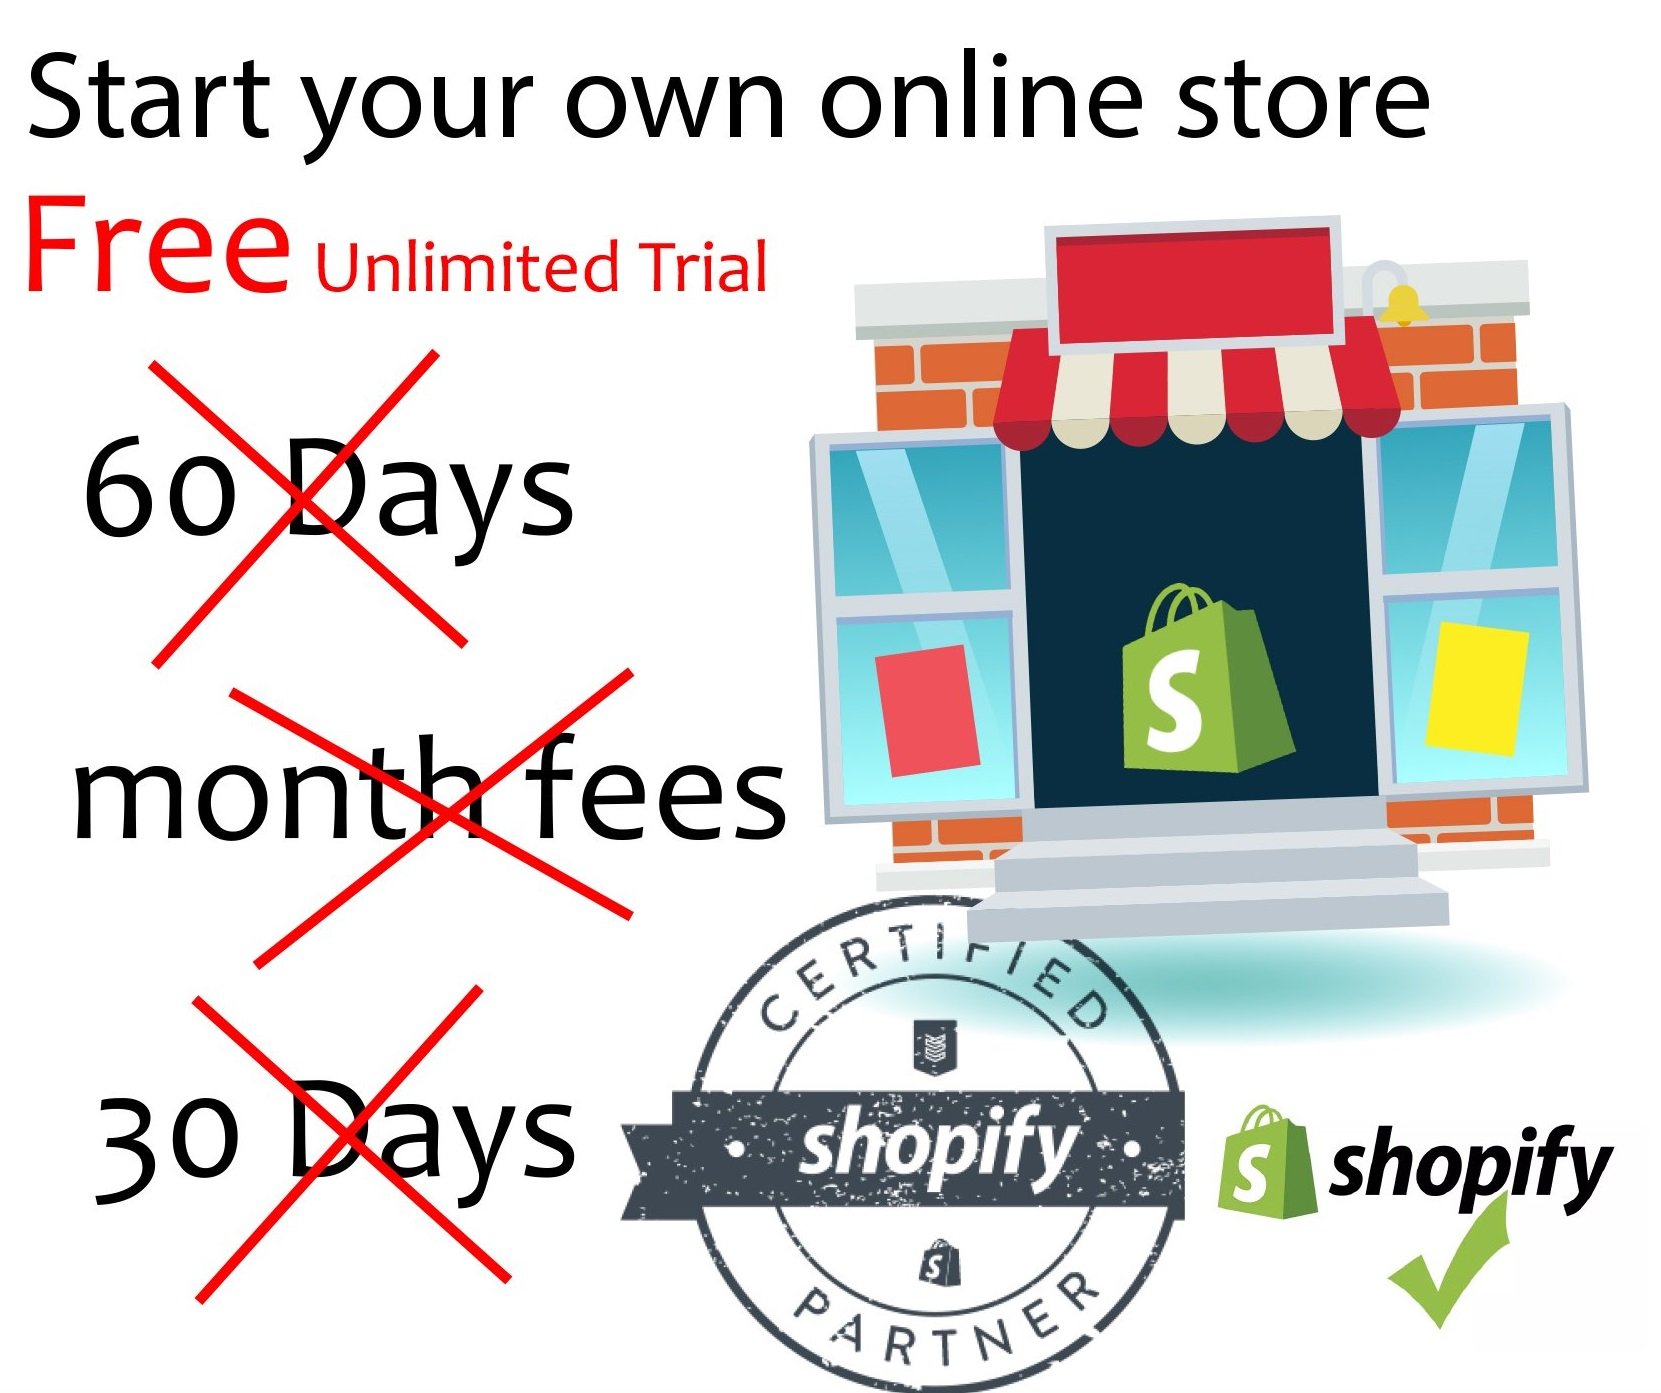 Provide-Shopify-Store-With-Unlimited-Free-Trial-No-Credit-Card-Needed